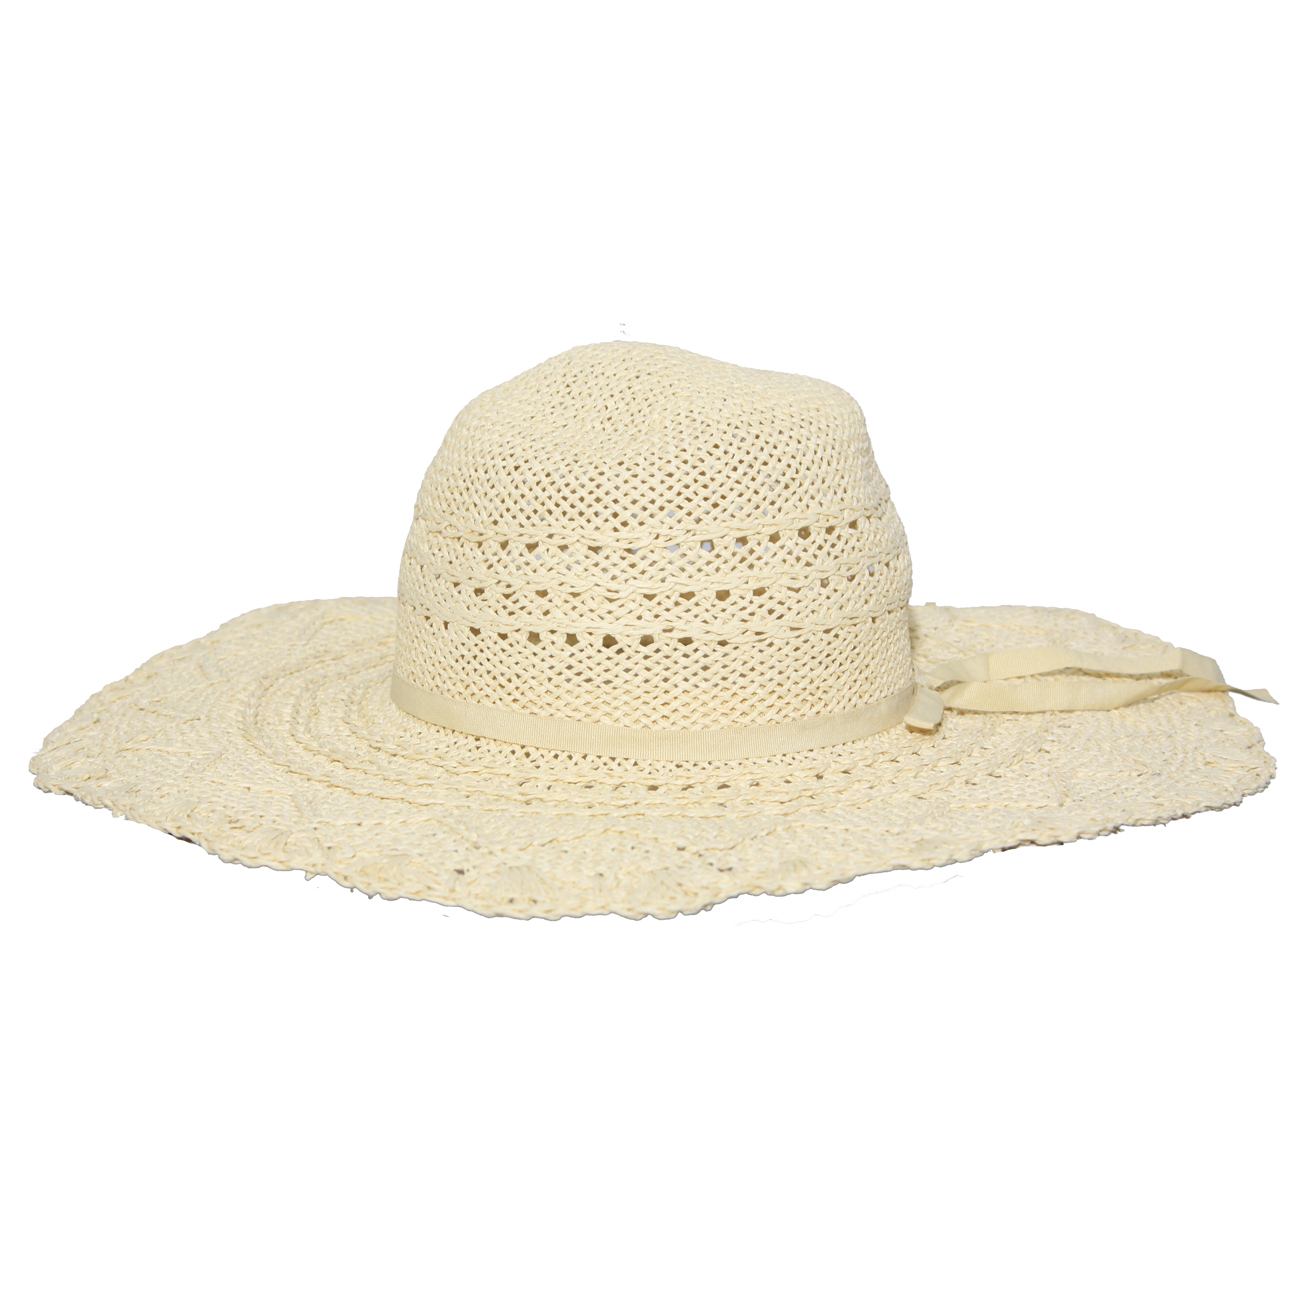 new womens straw wide brim floppy sun hat one size ebay